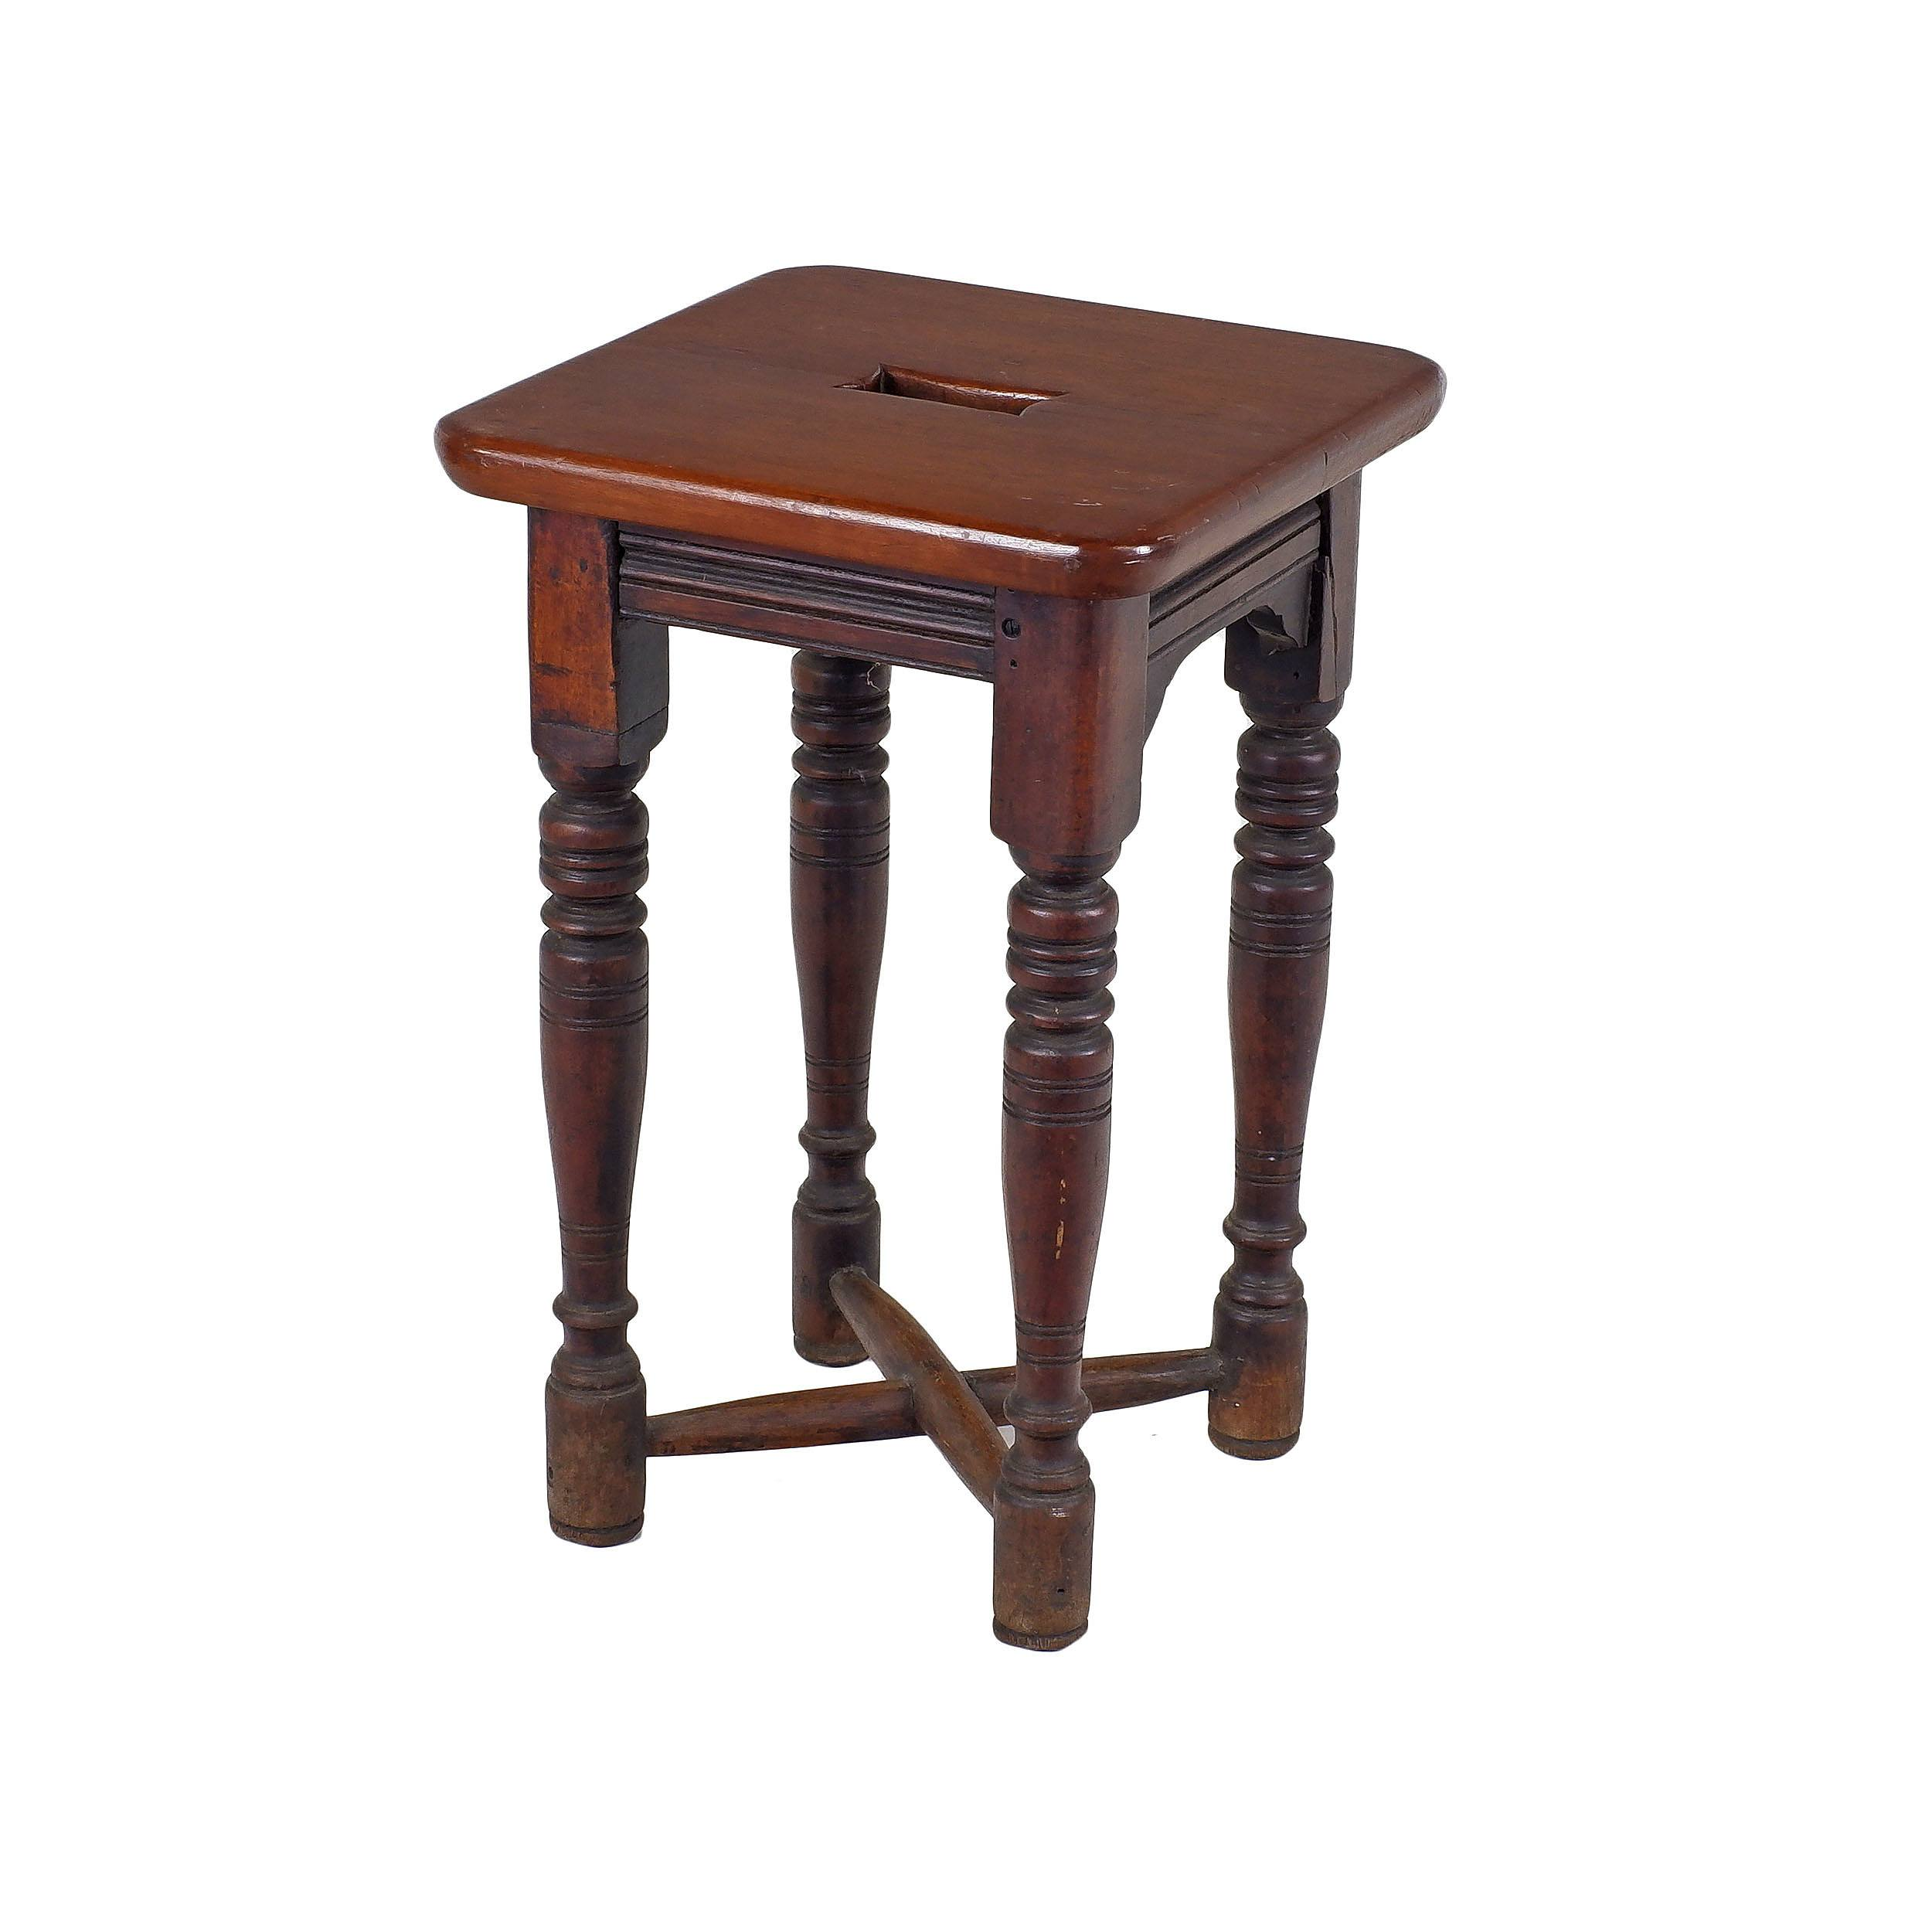 'Late Victorian Mahogany Stool Circa Late 19th Century'